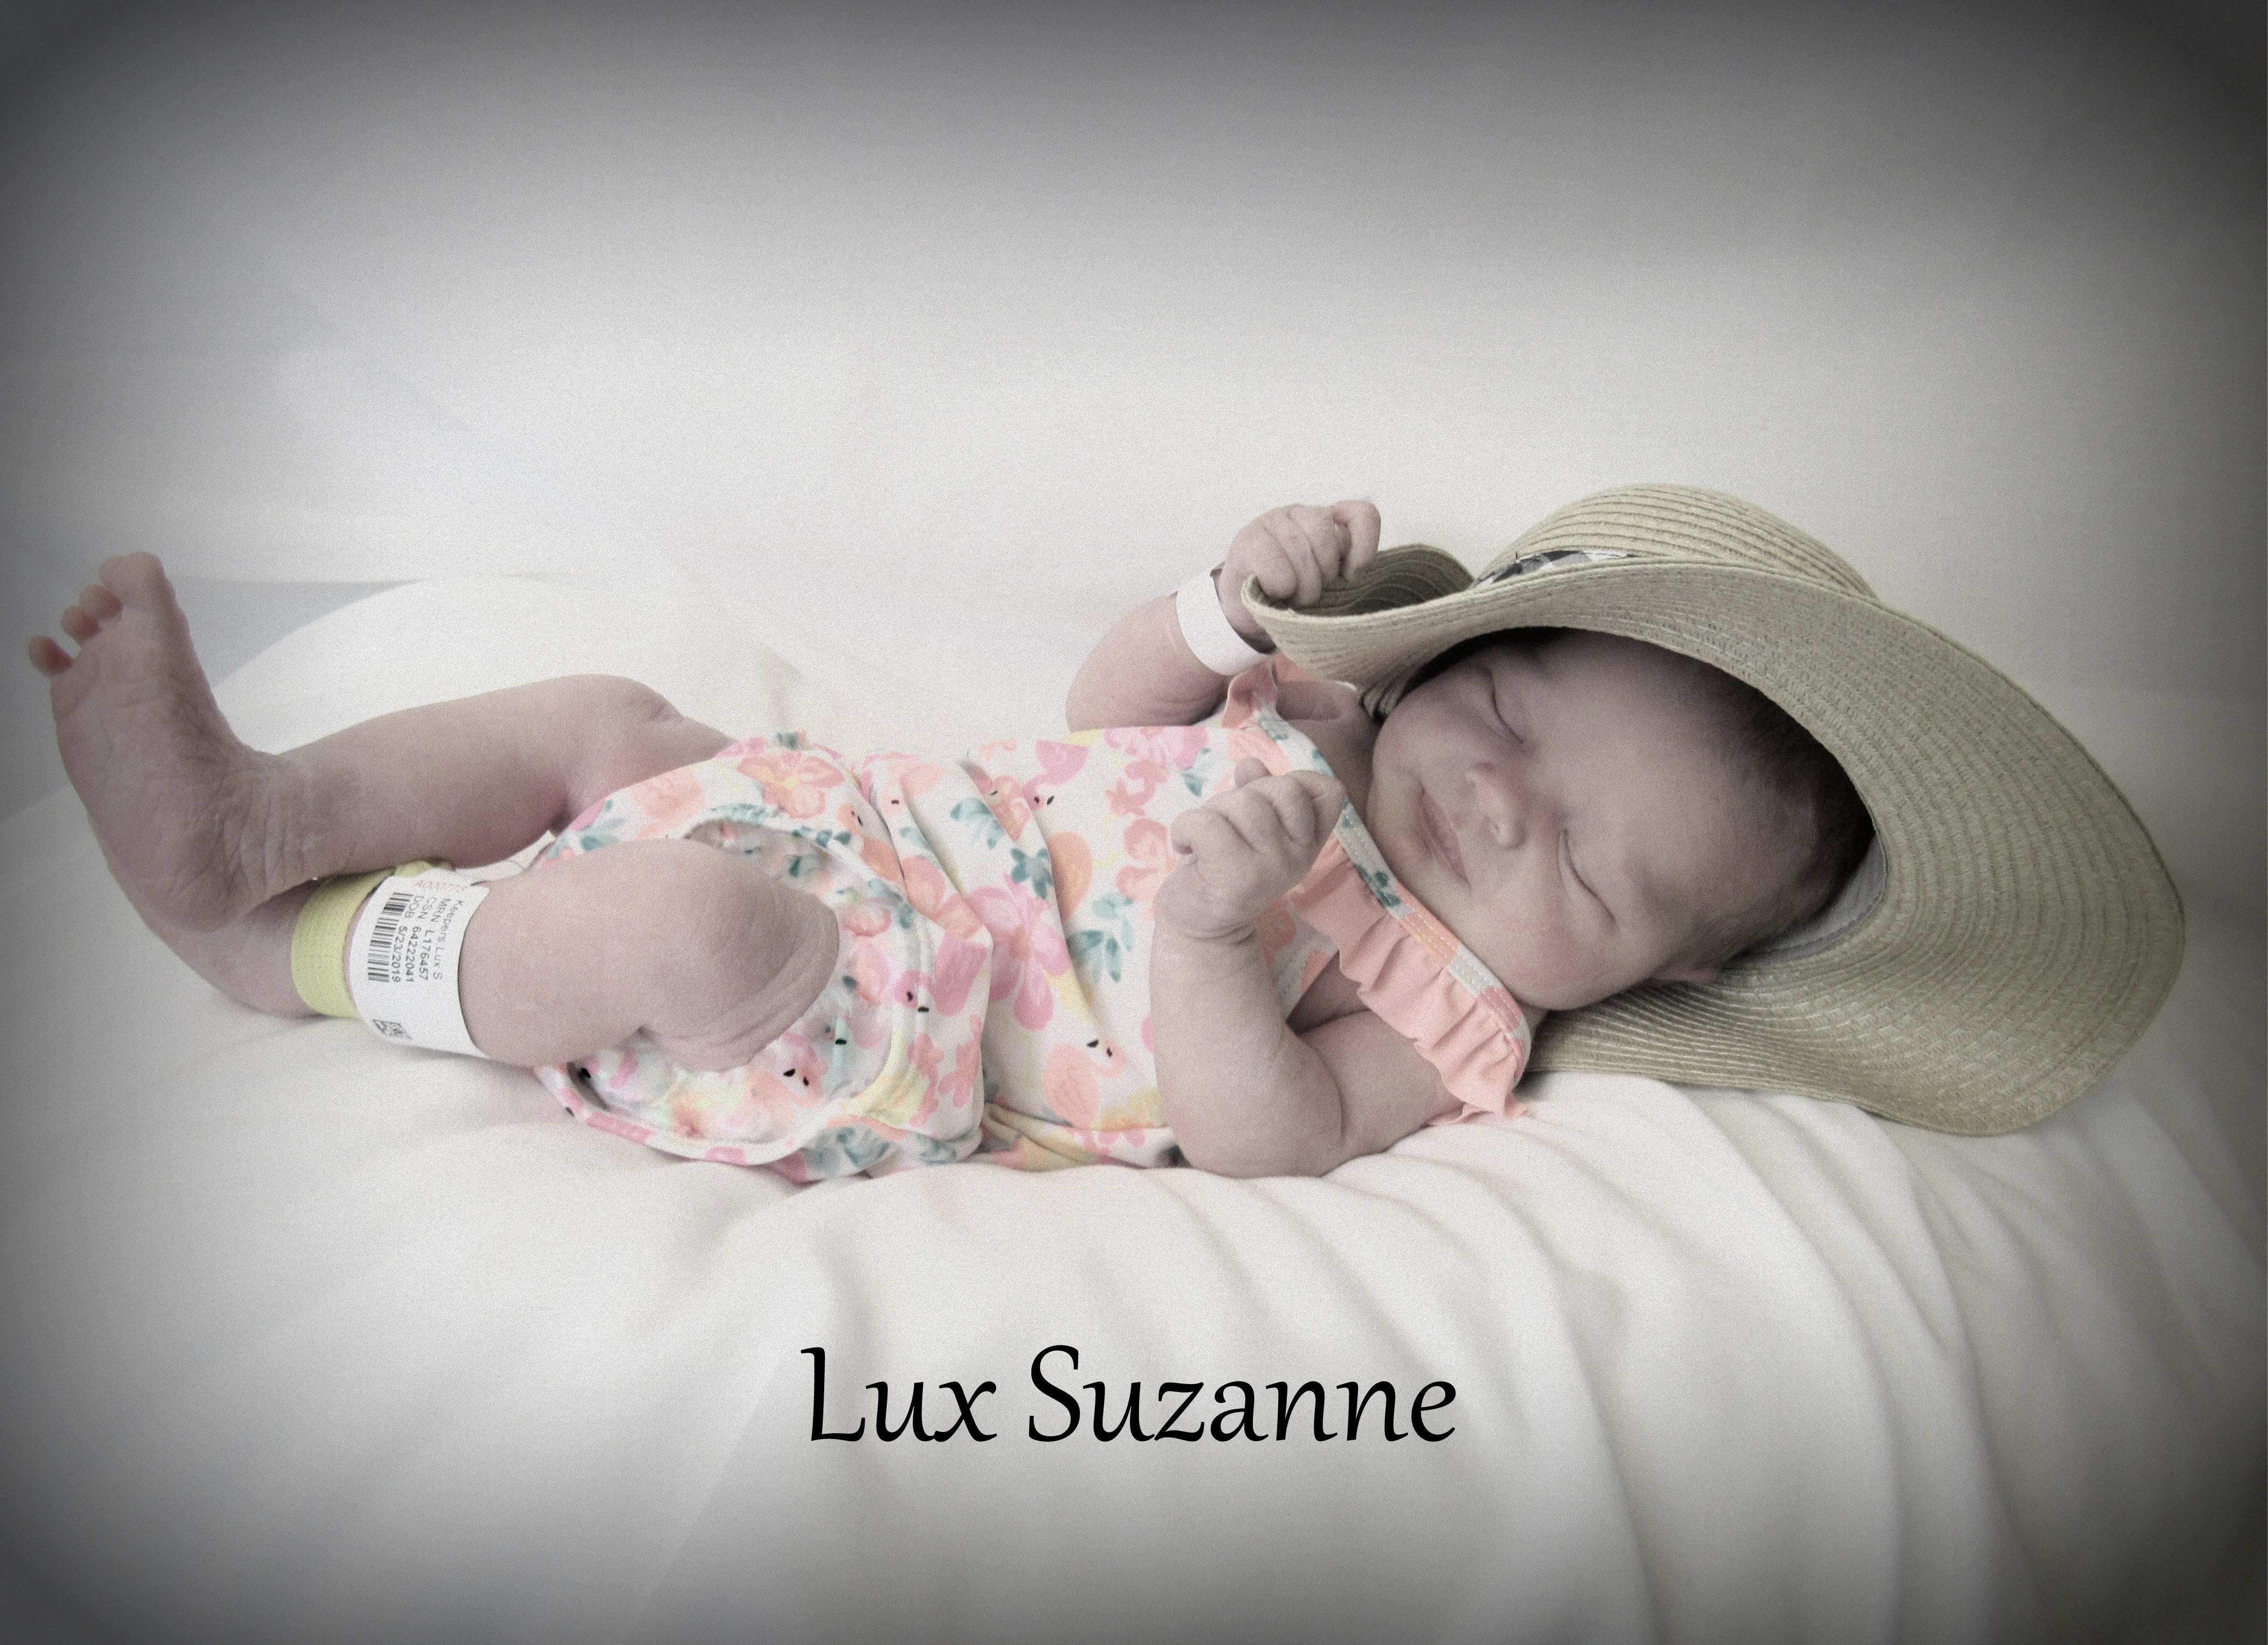 Lux Suzanne